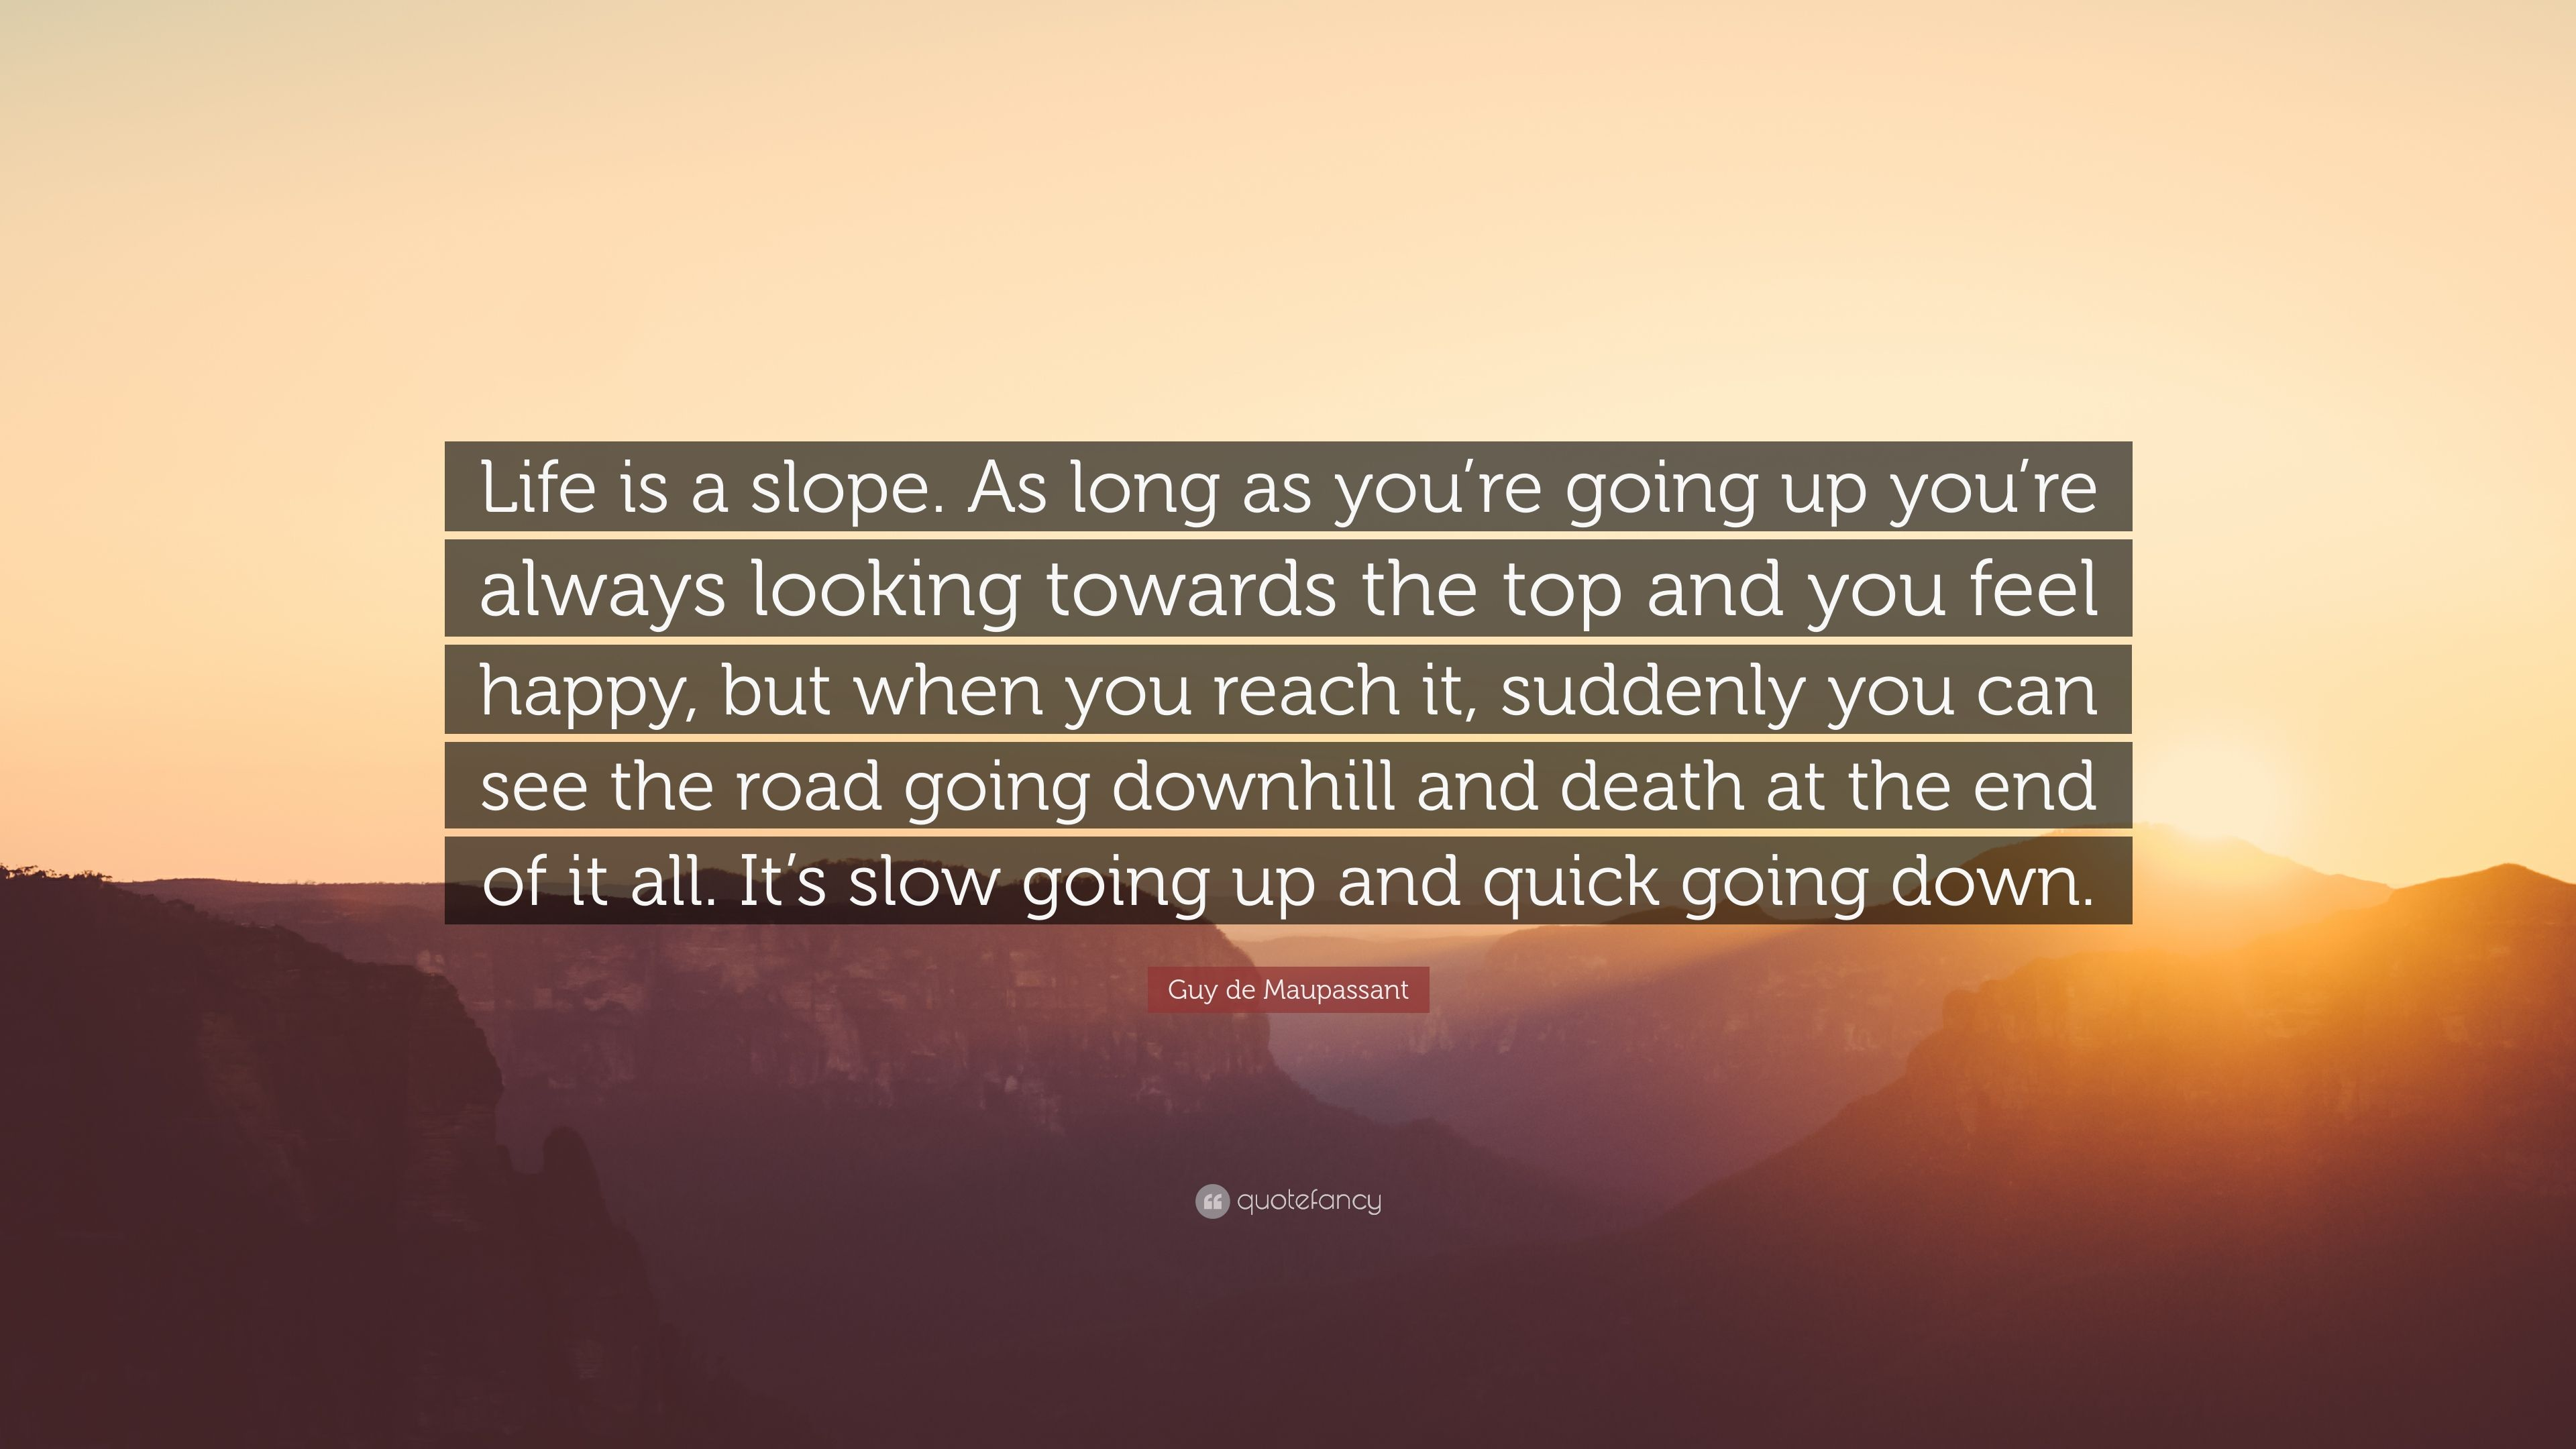 Guy De Maupassant Quote Life Is A Slope As Long As You Re Going Up You Re Always Looking Towards The Top And You Feel Happy But When You Reach 6 Wallpapers Quotefancy